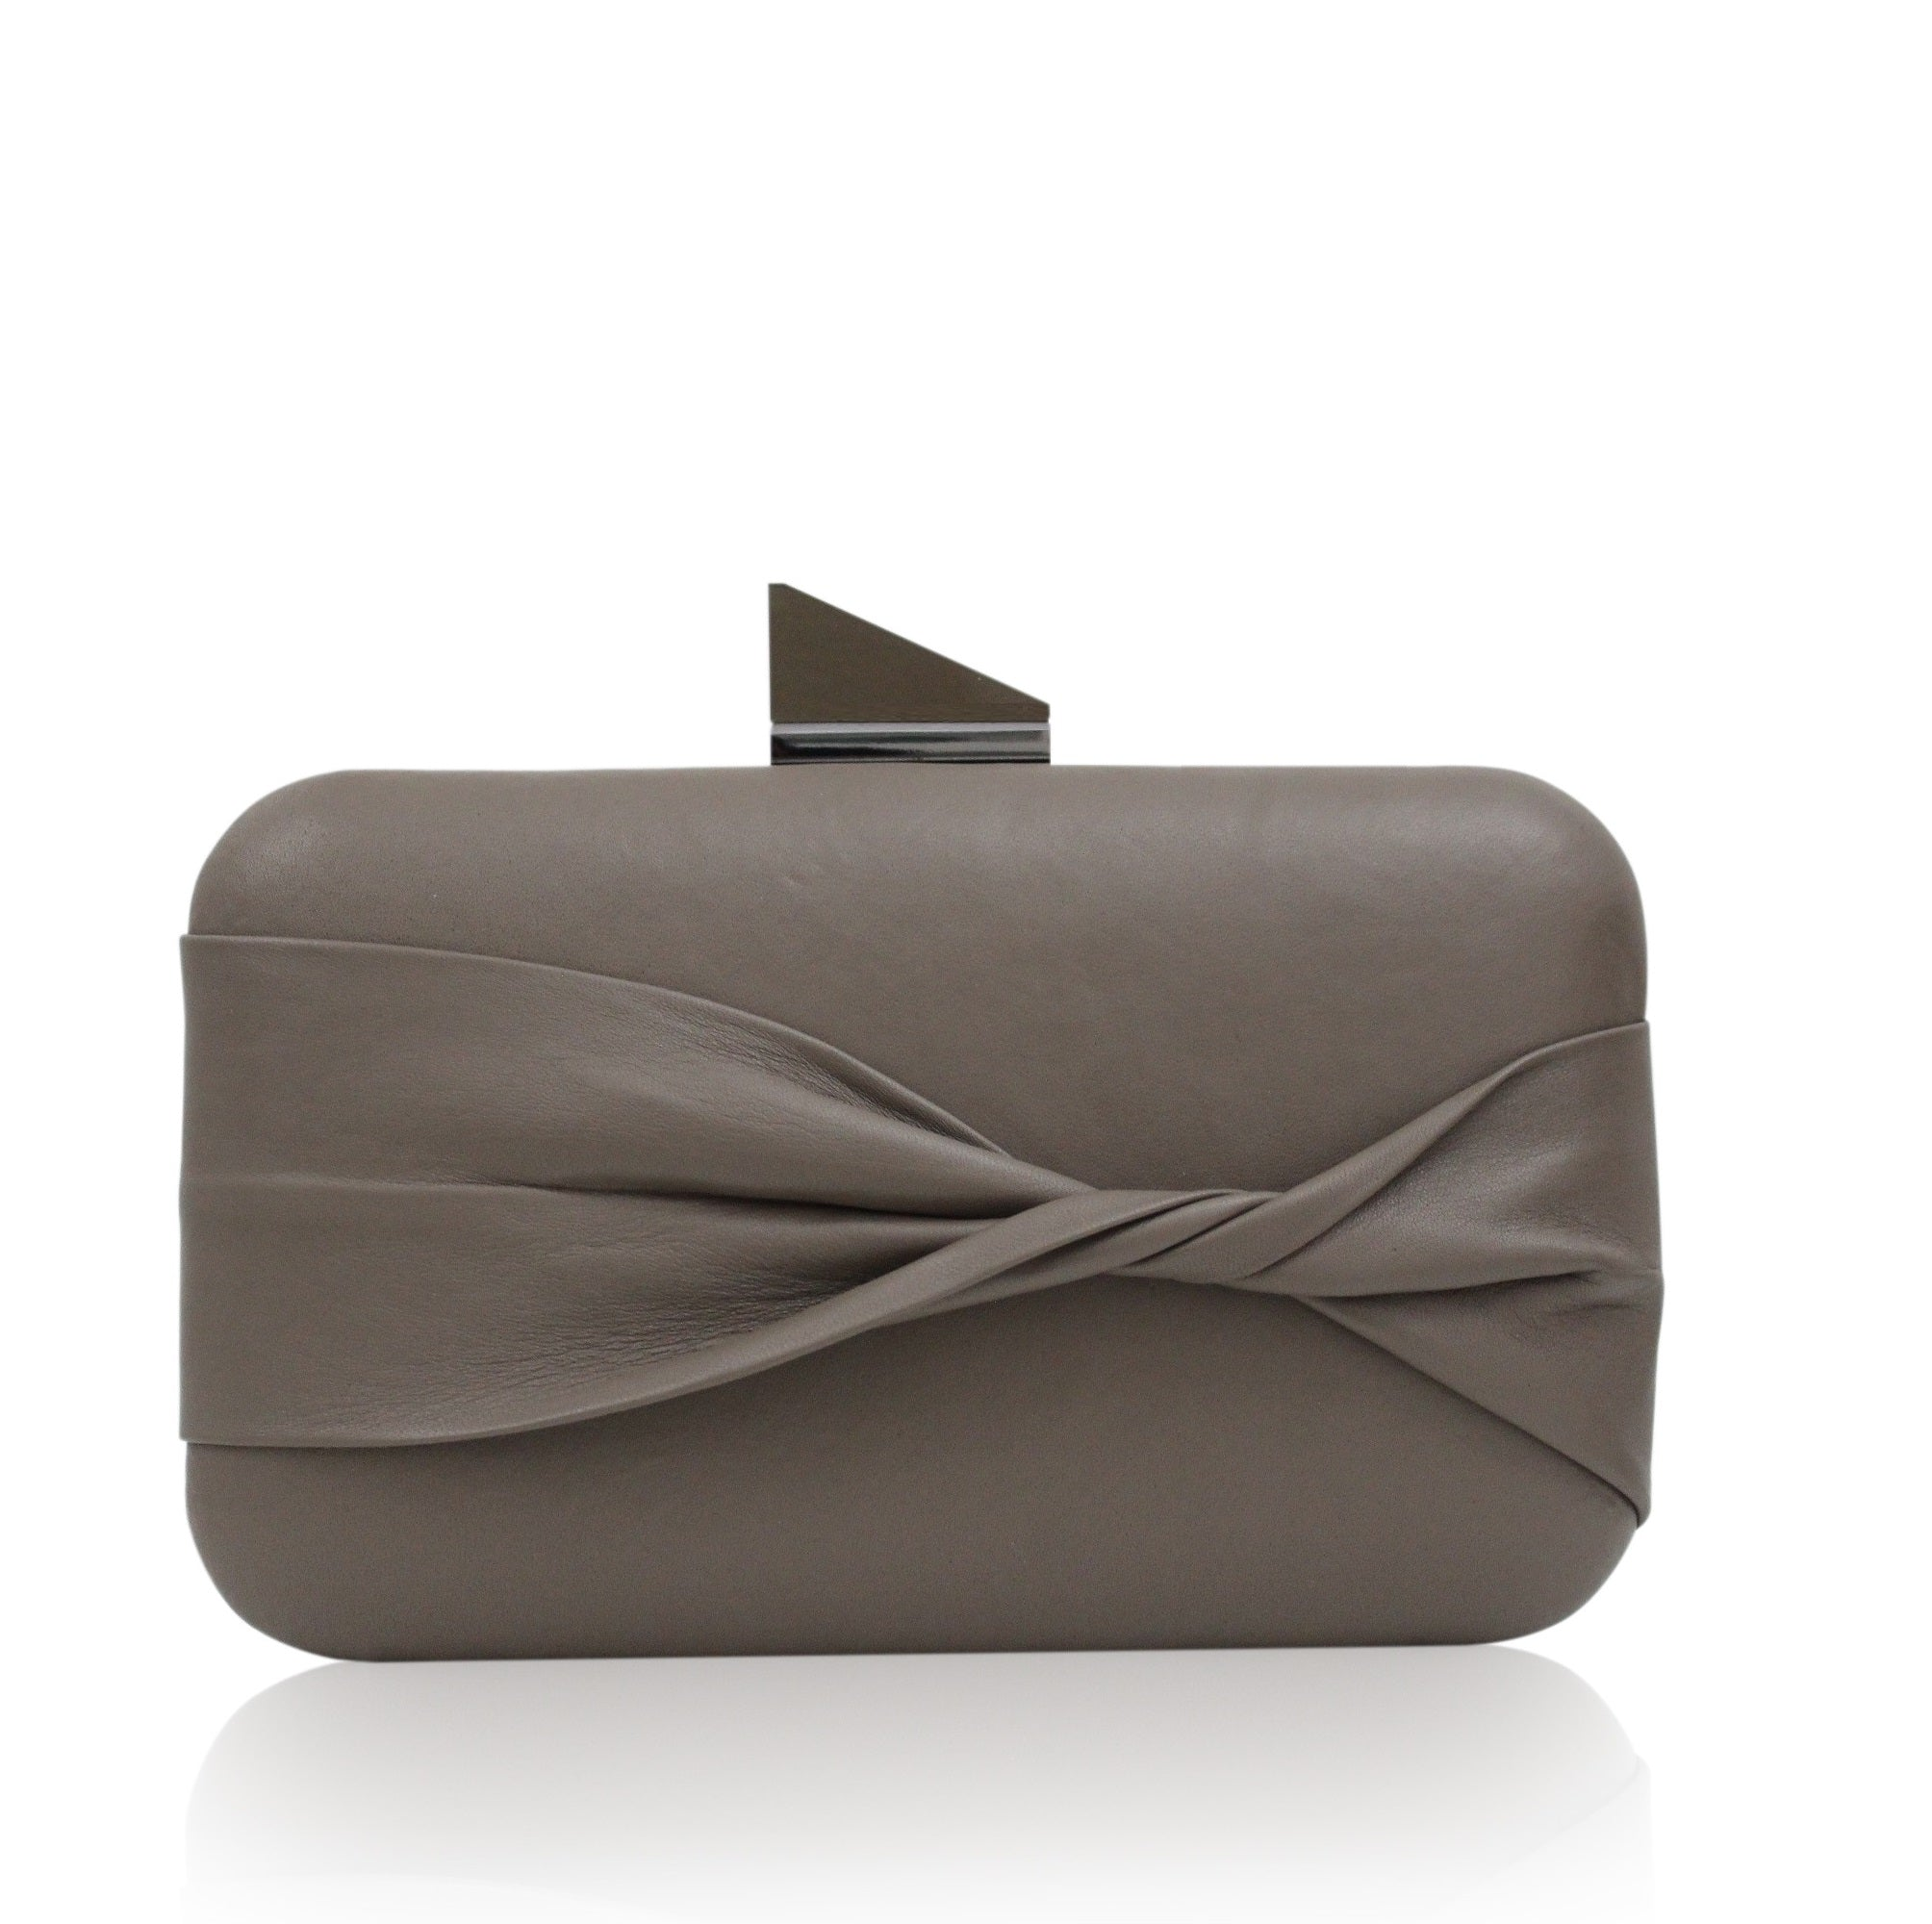 Kamilah Willacy - Shelie Oversized Clutch in Cedar Brown